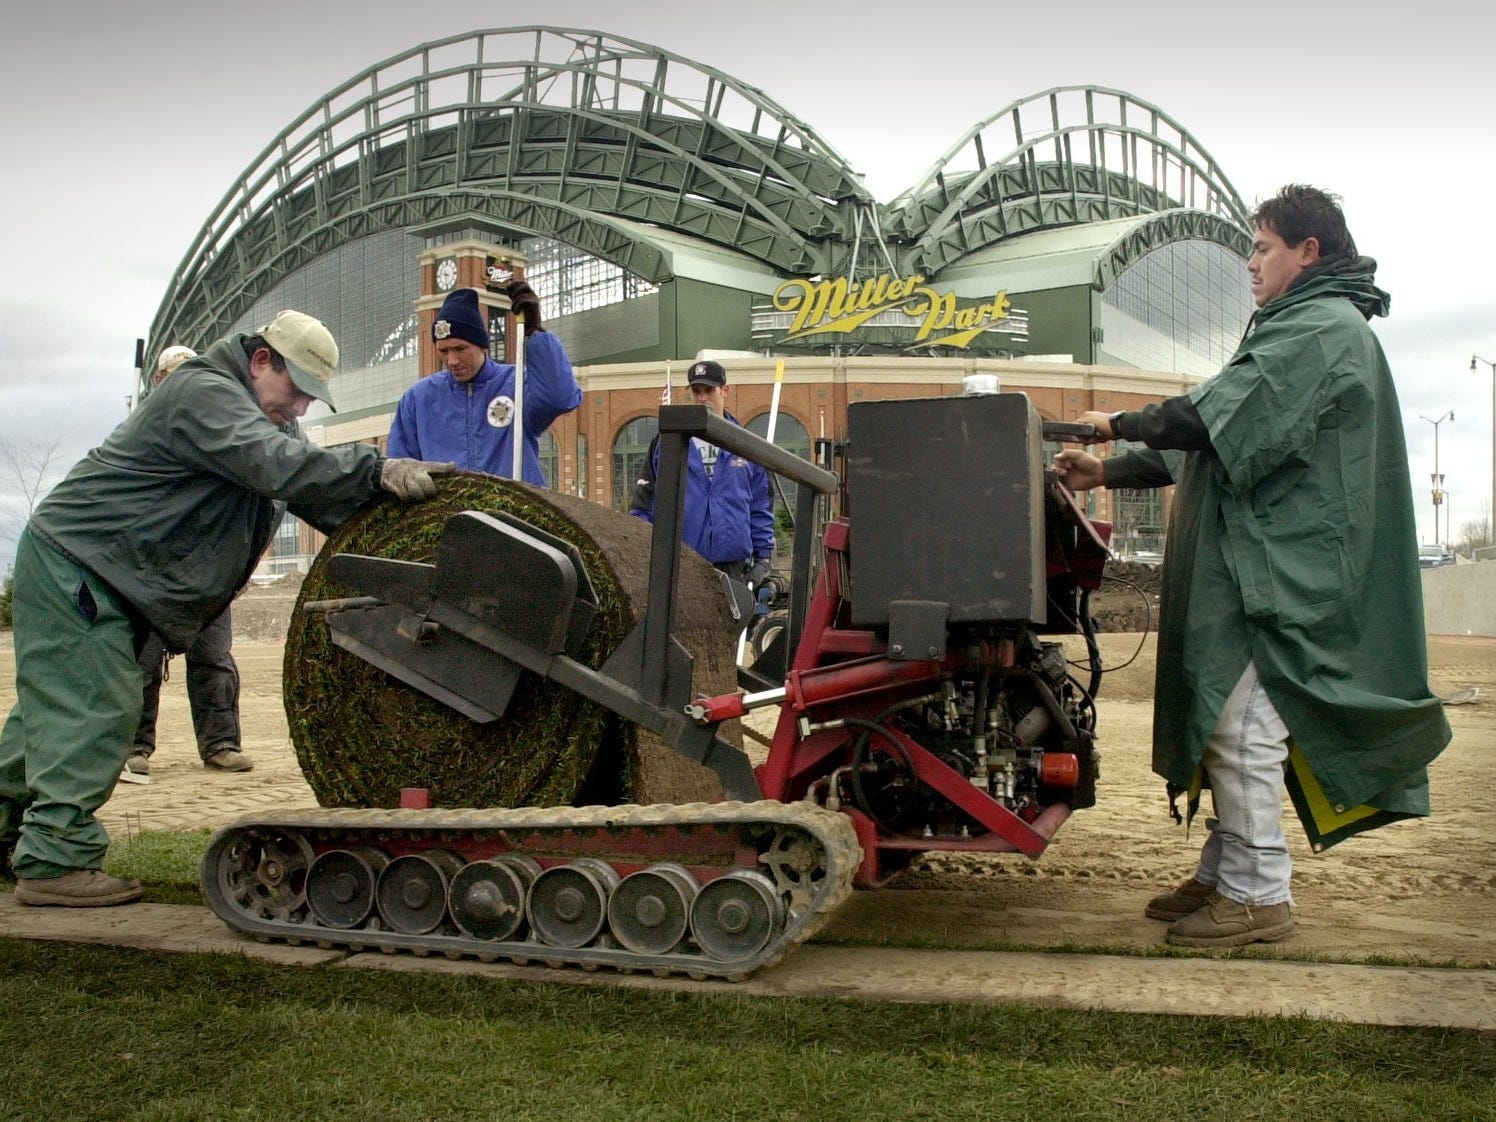 Manuel Orozco, right, and Jesus Galvan, left, of American Sod, and Miller Park grounds crew members lay sod at the youth baseball facility on the old County Stadium grounds Monday morning, Nov. 19, 2001. The $3.1 million facility will be known as Helfaer Field. Supporters say the facility, which is expected to open next Memorial Day, will be one of the premier youth baseball facilities in the country.